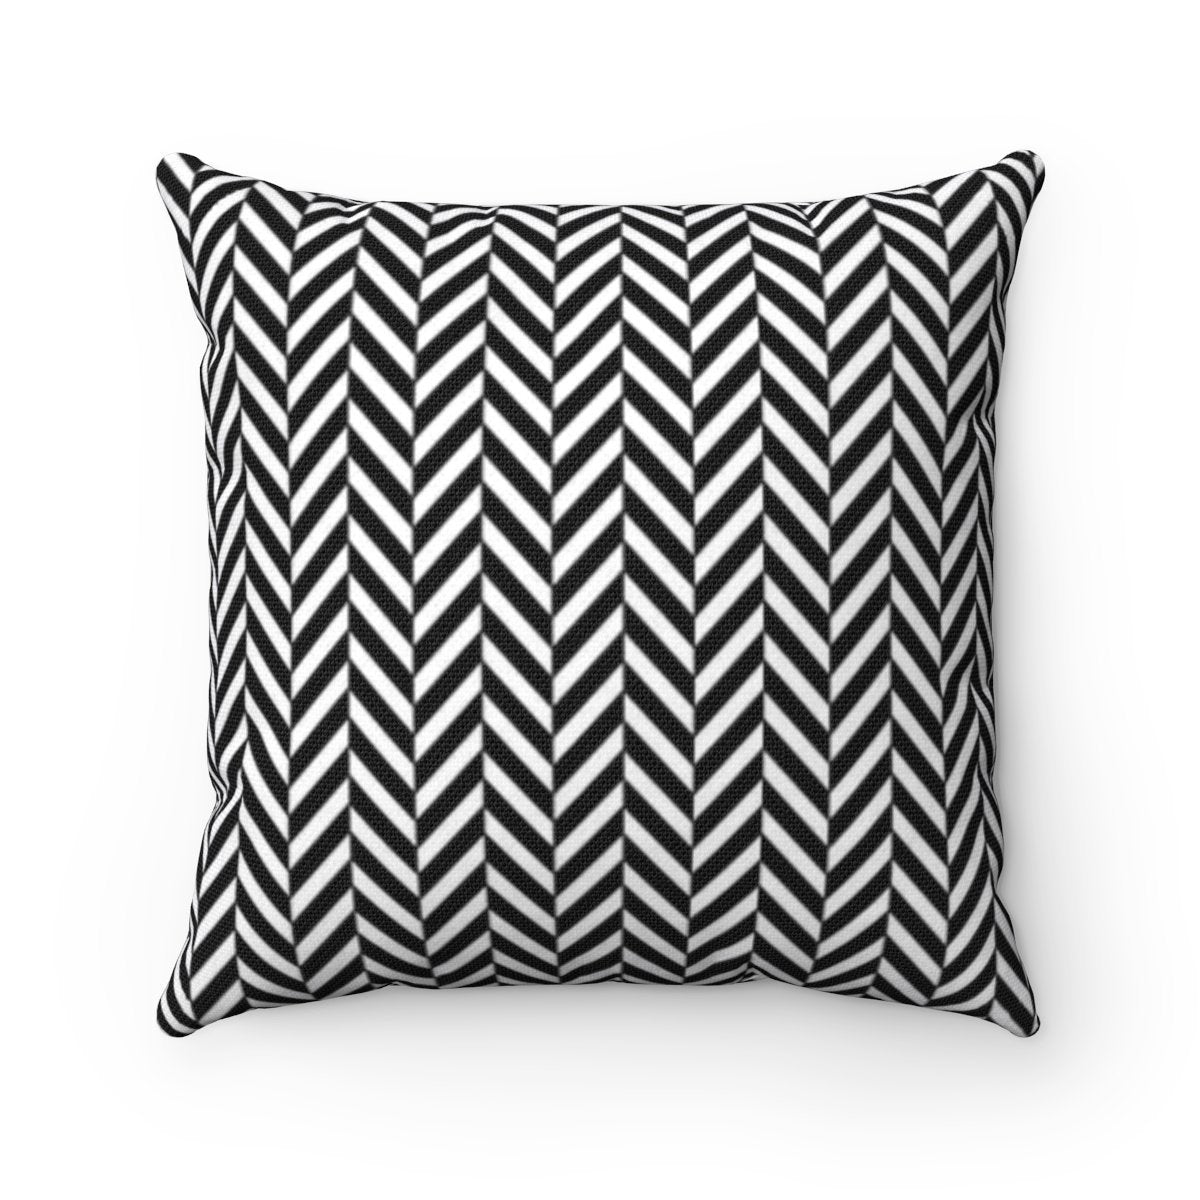 Herringbone 2 in 1 decorative cushion cover-Home Decor - Decorative Accents - Pillows & Throws - Decorative Pillows-Maison d'Elite-Très Elite